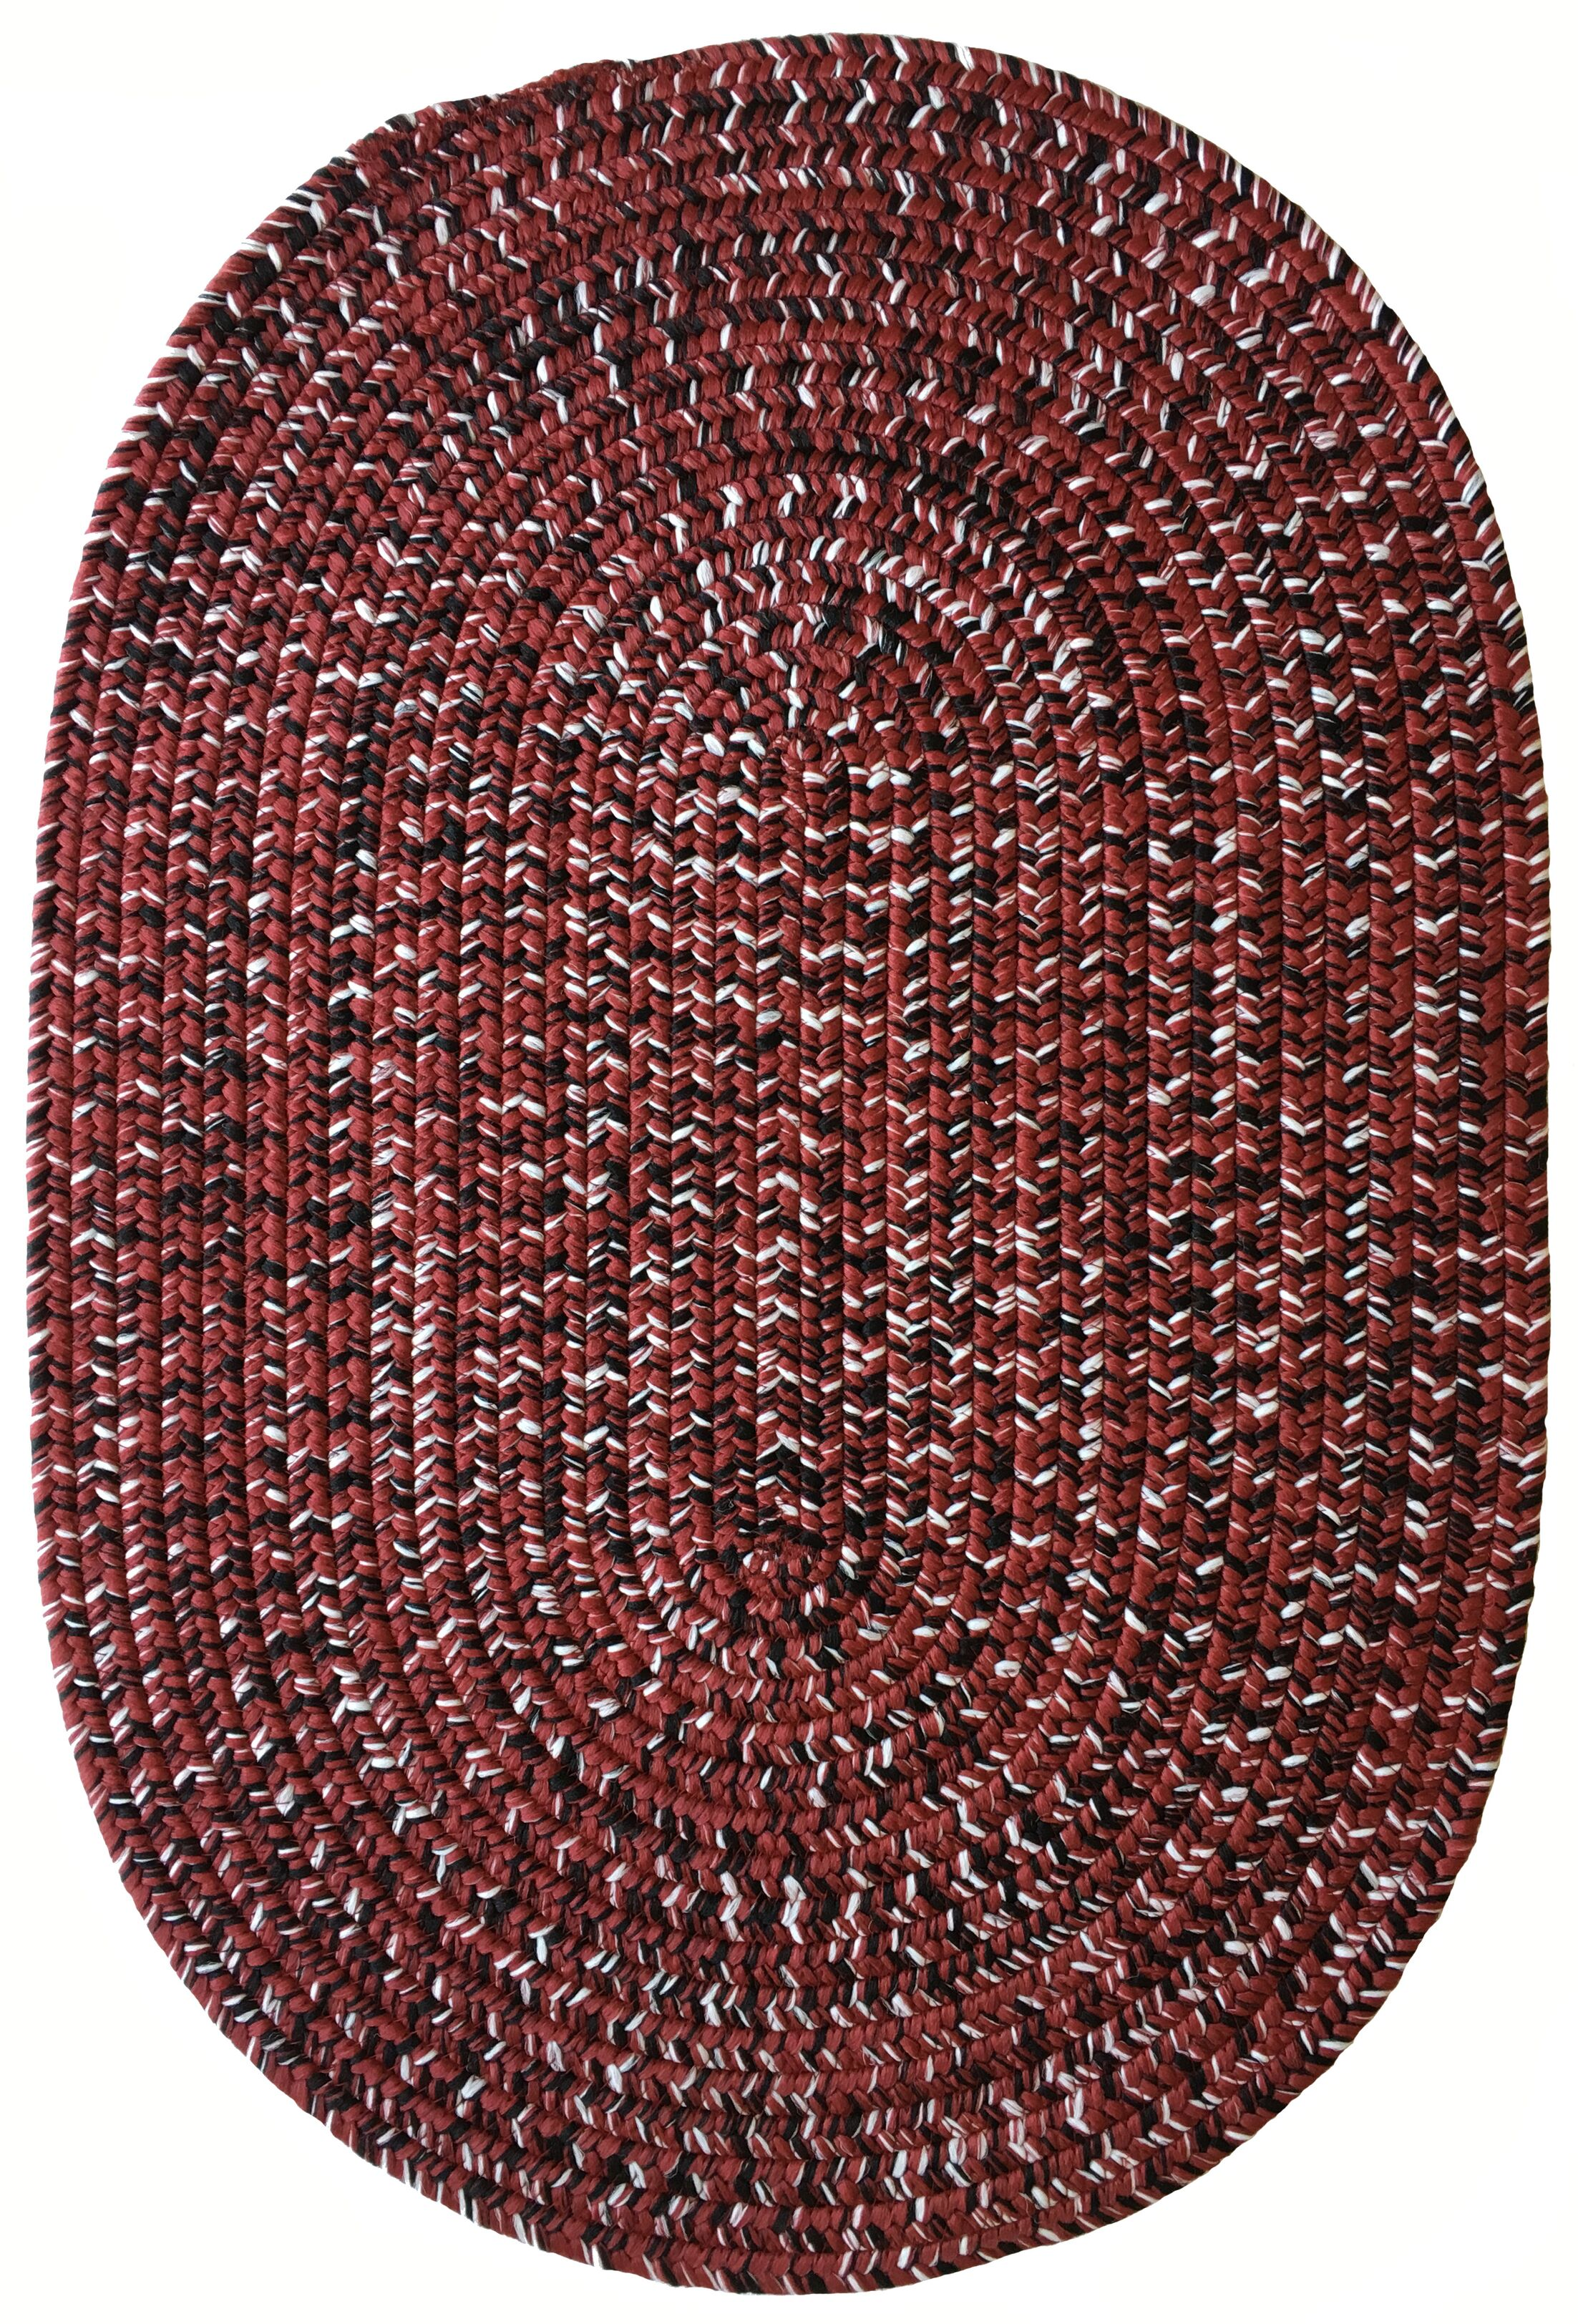 One-of-a-Kind Aukerman Hand-Braided Burgundy Indoor/Outdoor Area Rug Rug Size: Oval 5' x 8'